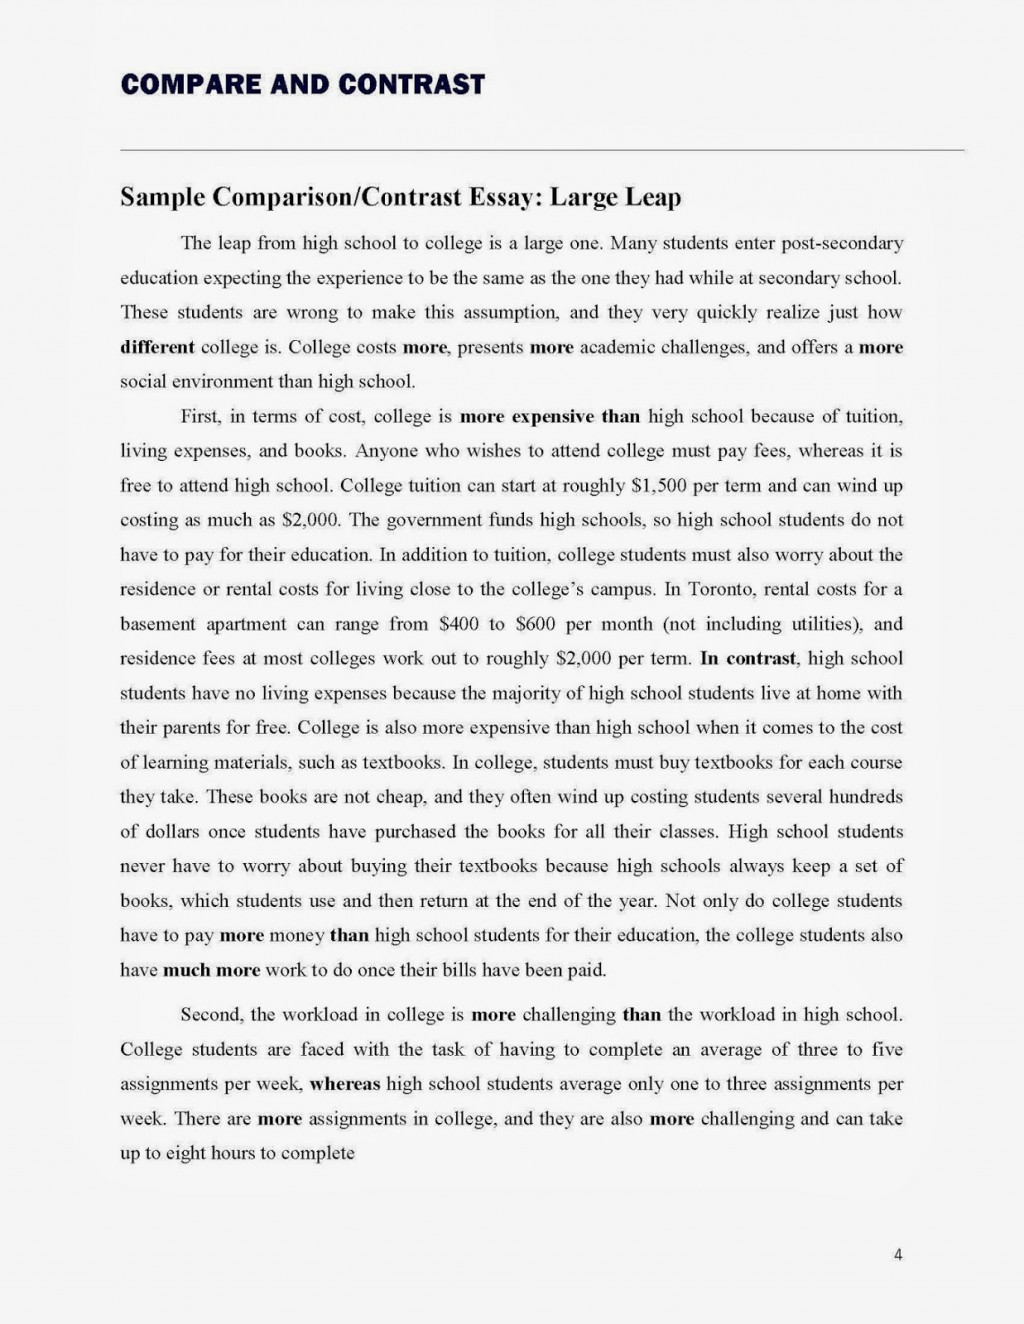 018 Essay Example Evaluation Examples Compare2band2bcontrast2bessay Page 4 Formidable Critical Outline Thesis Course Large